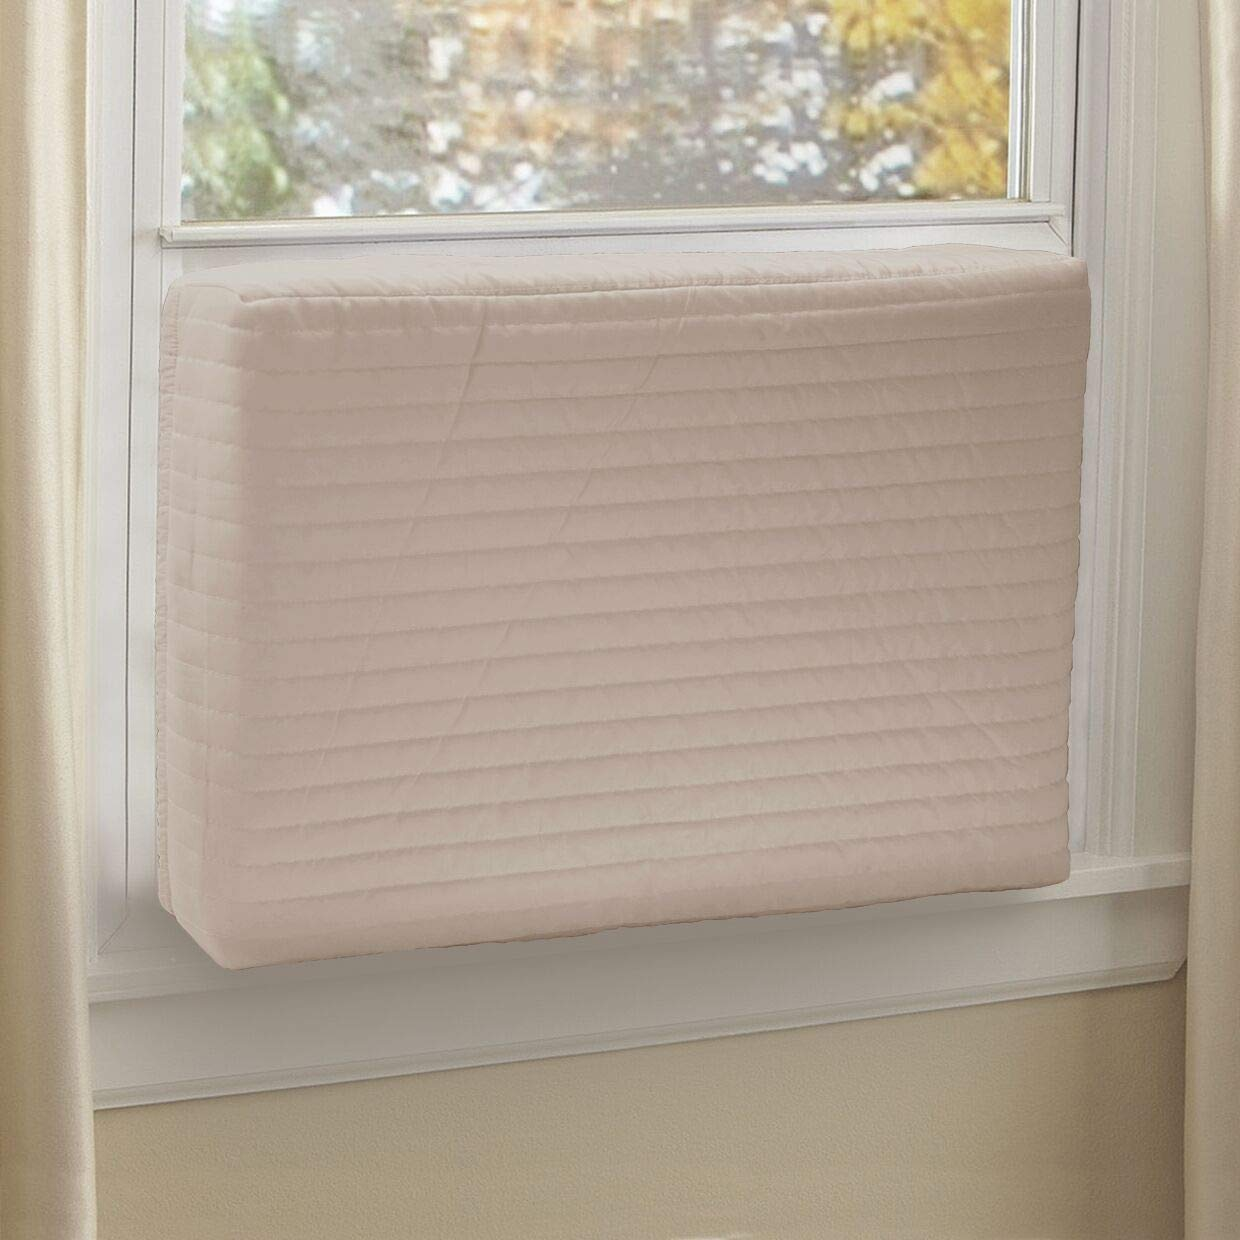 Foozet Indoor Air Conditioner Cover Double Insulation